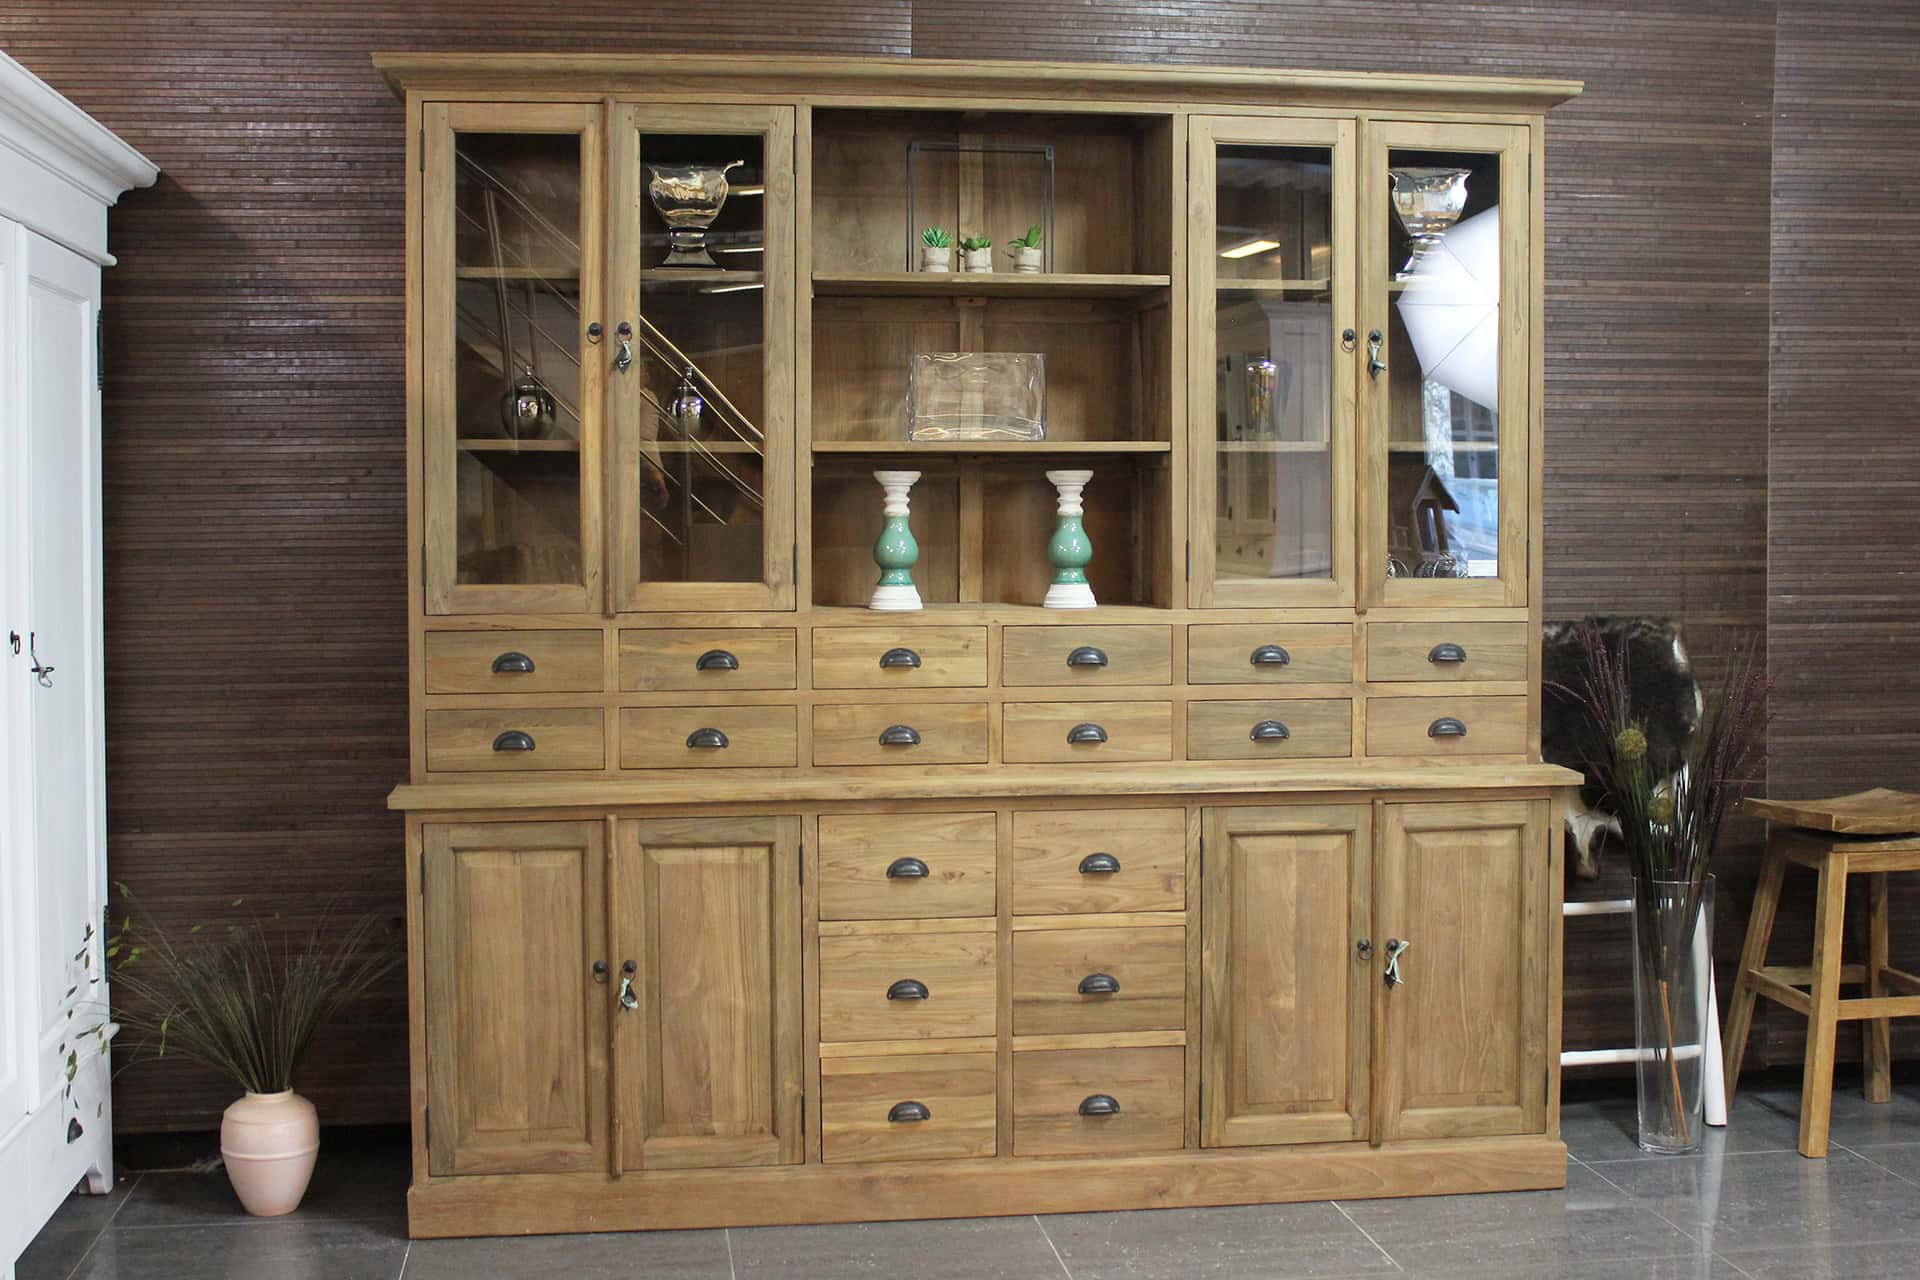 Teak Barang 240 | large teak pharmacy cabinet with lots of drawers and storage space. Spacious buffet cabinet teak, solid smooth untreated wood, rural style - TEAK2.